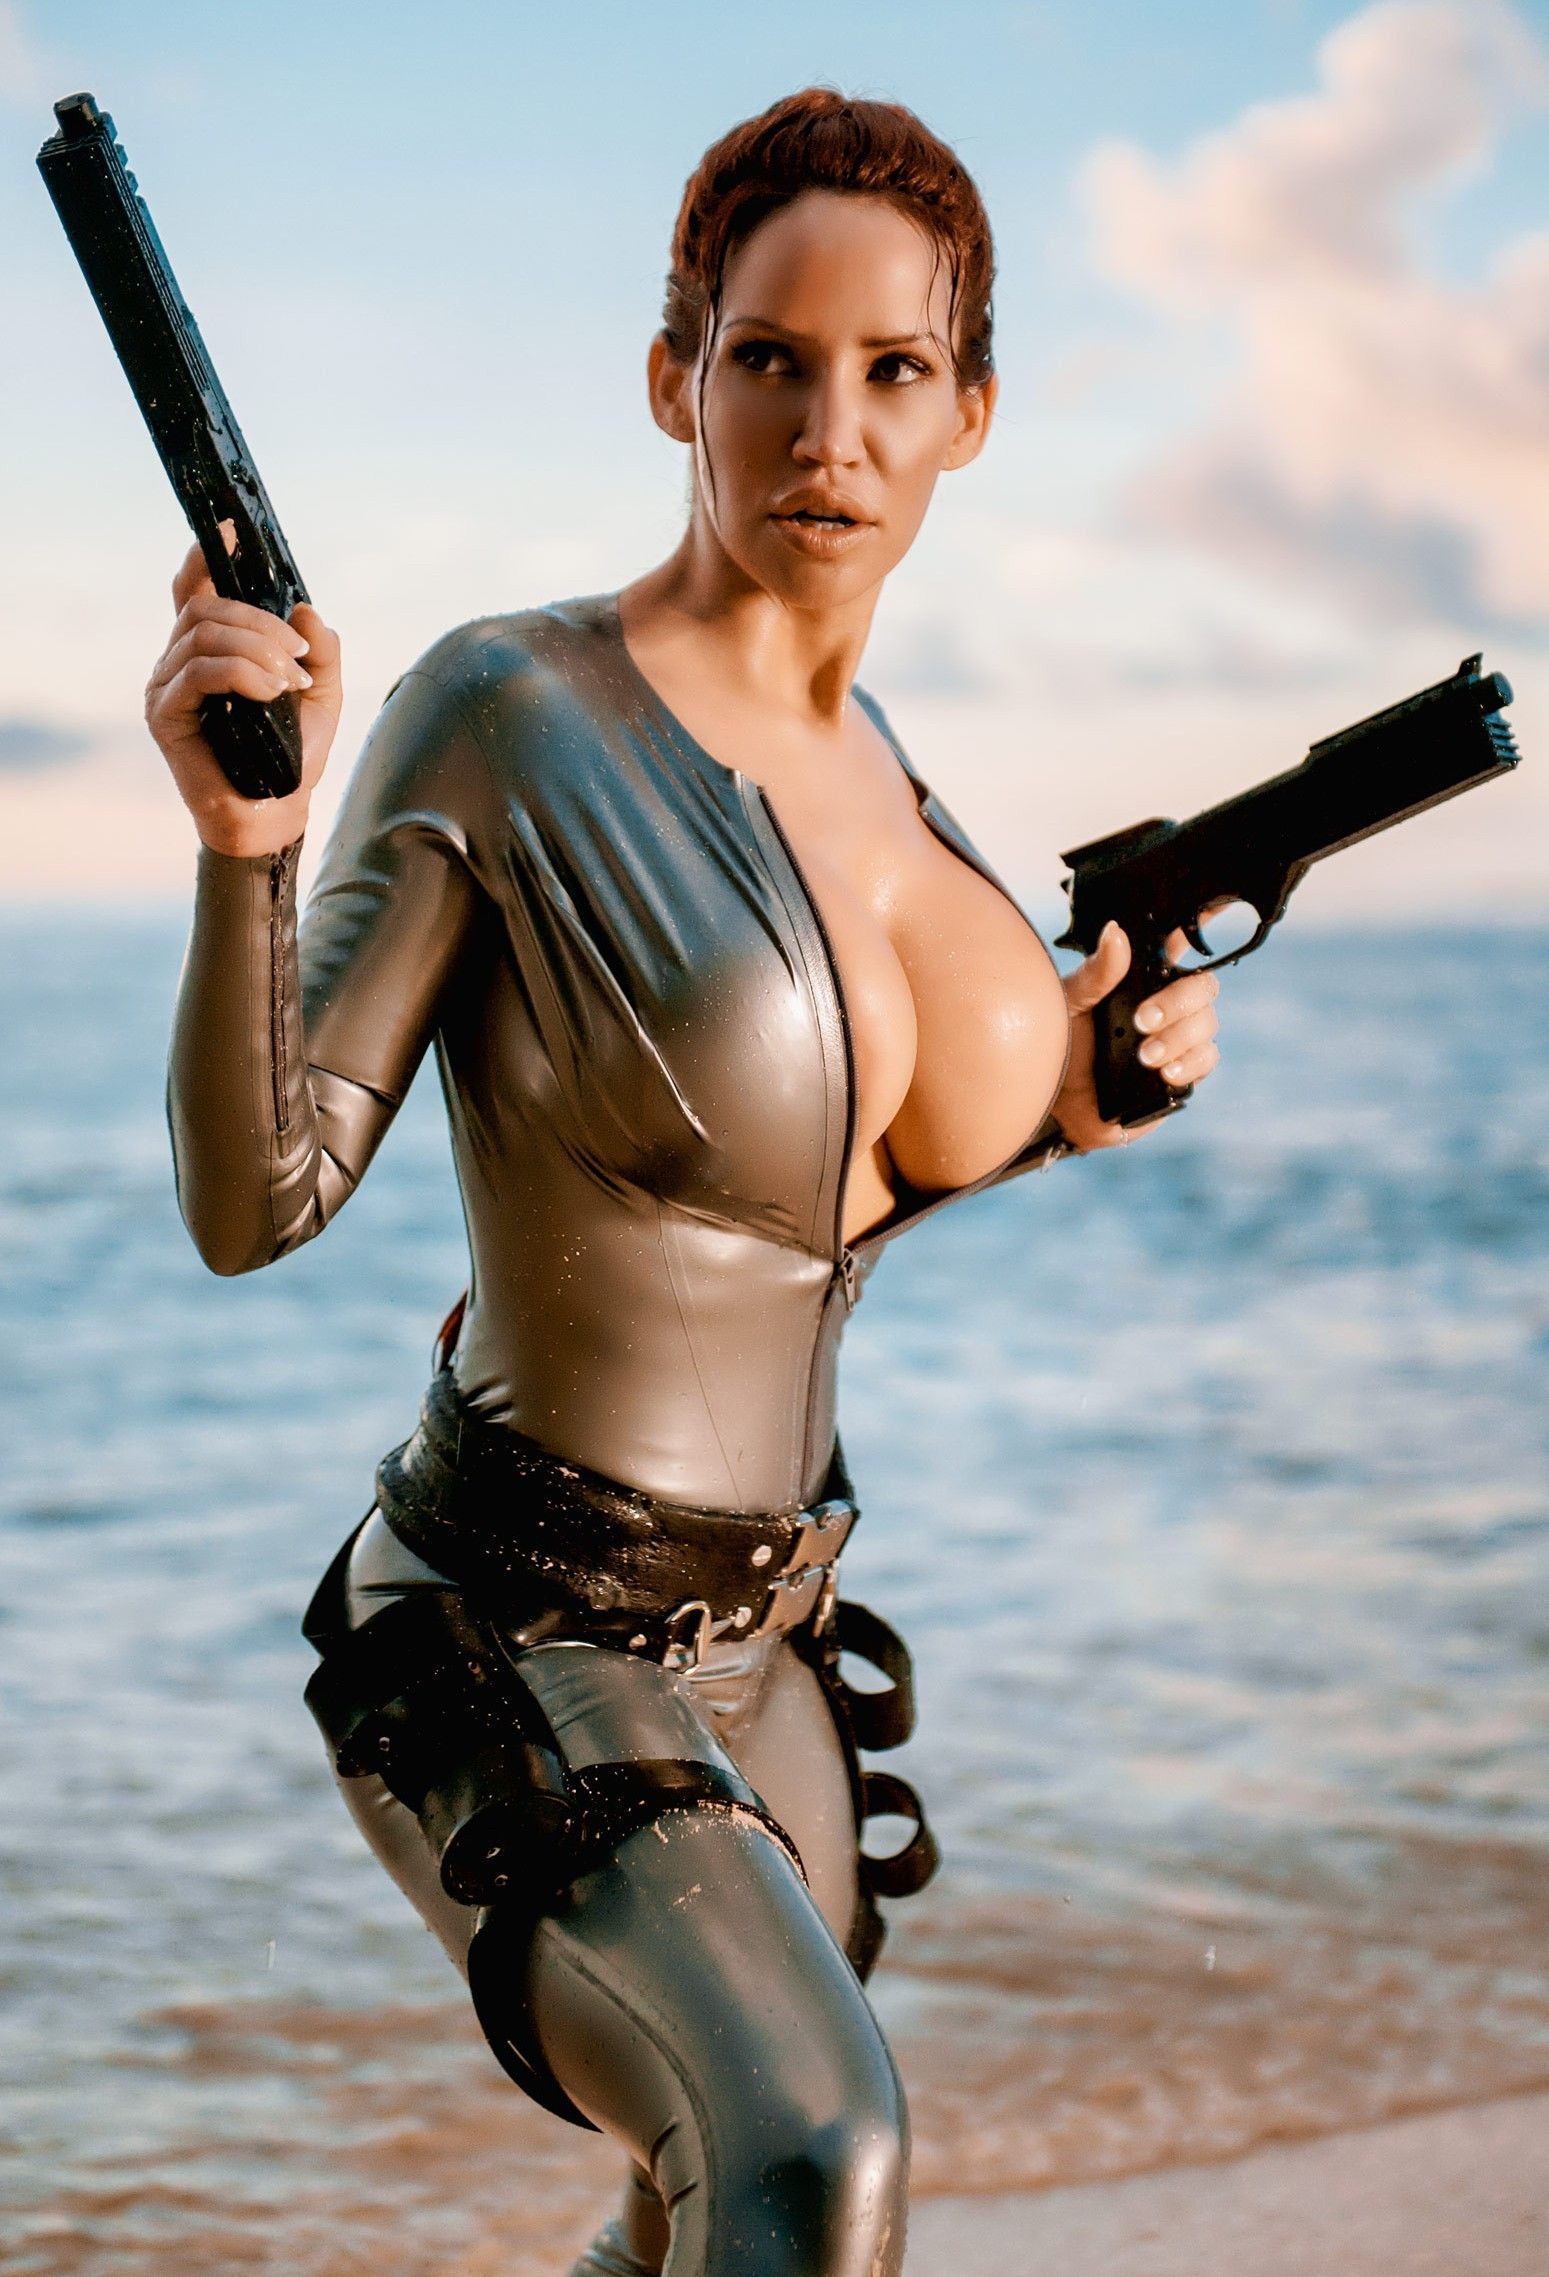 Hot tomb raider boobs porncraft pictures